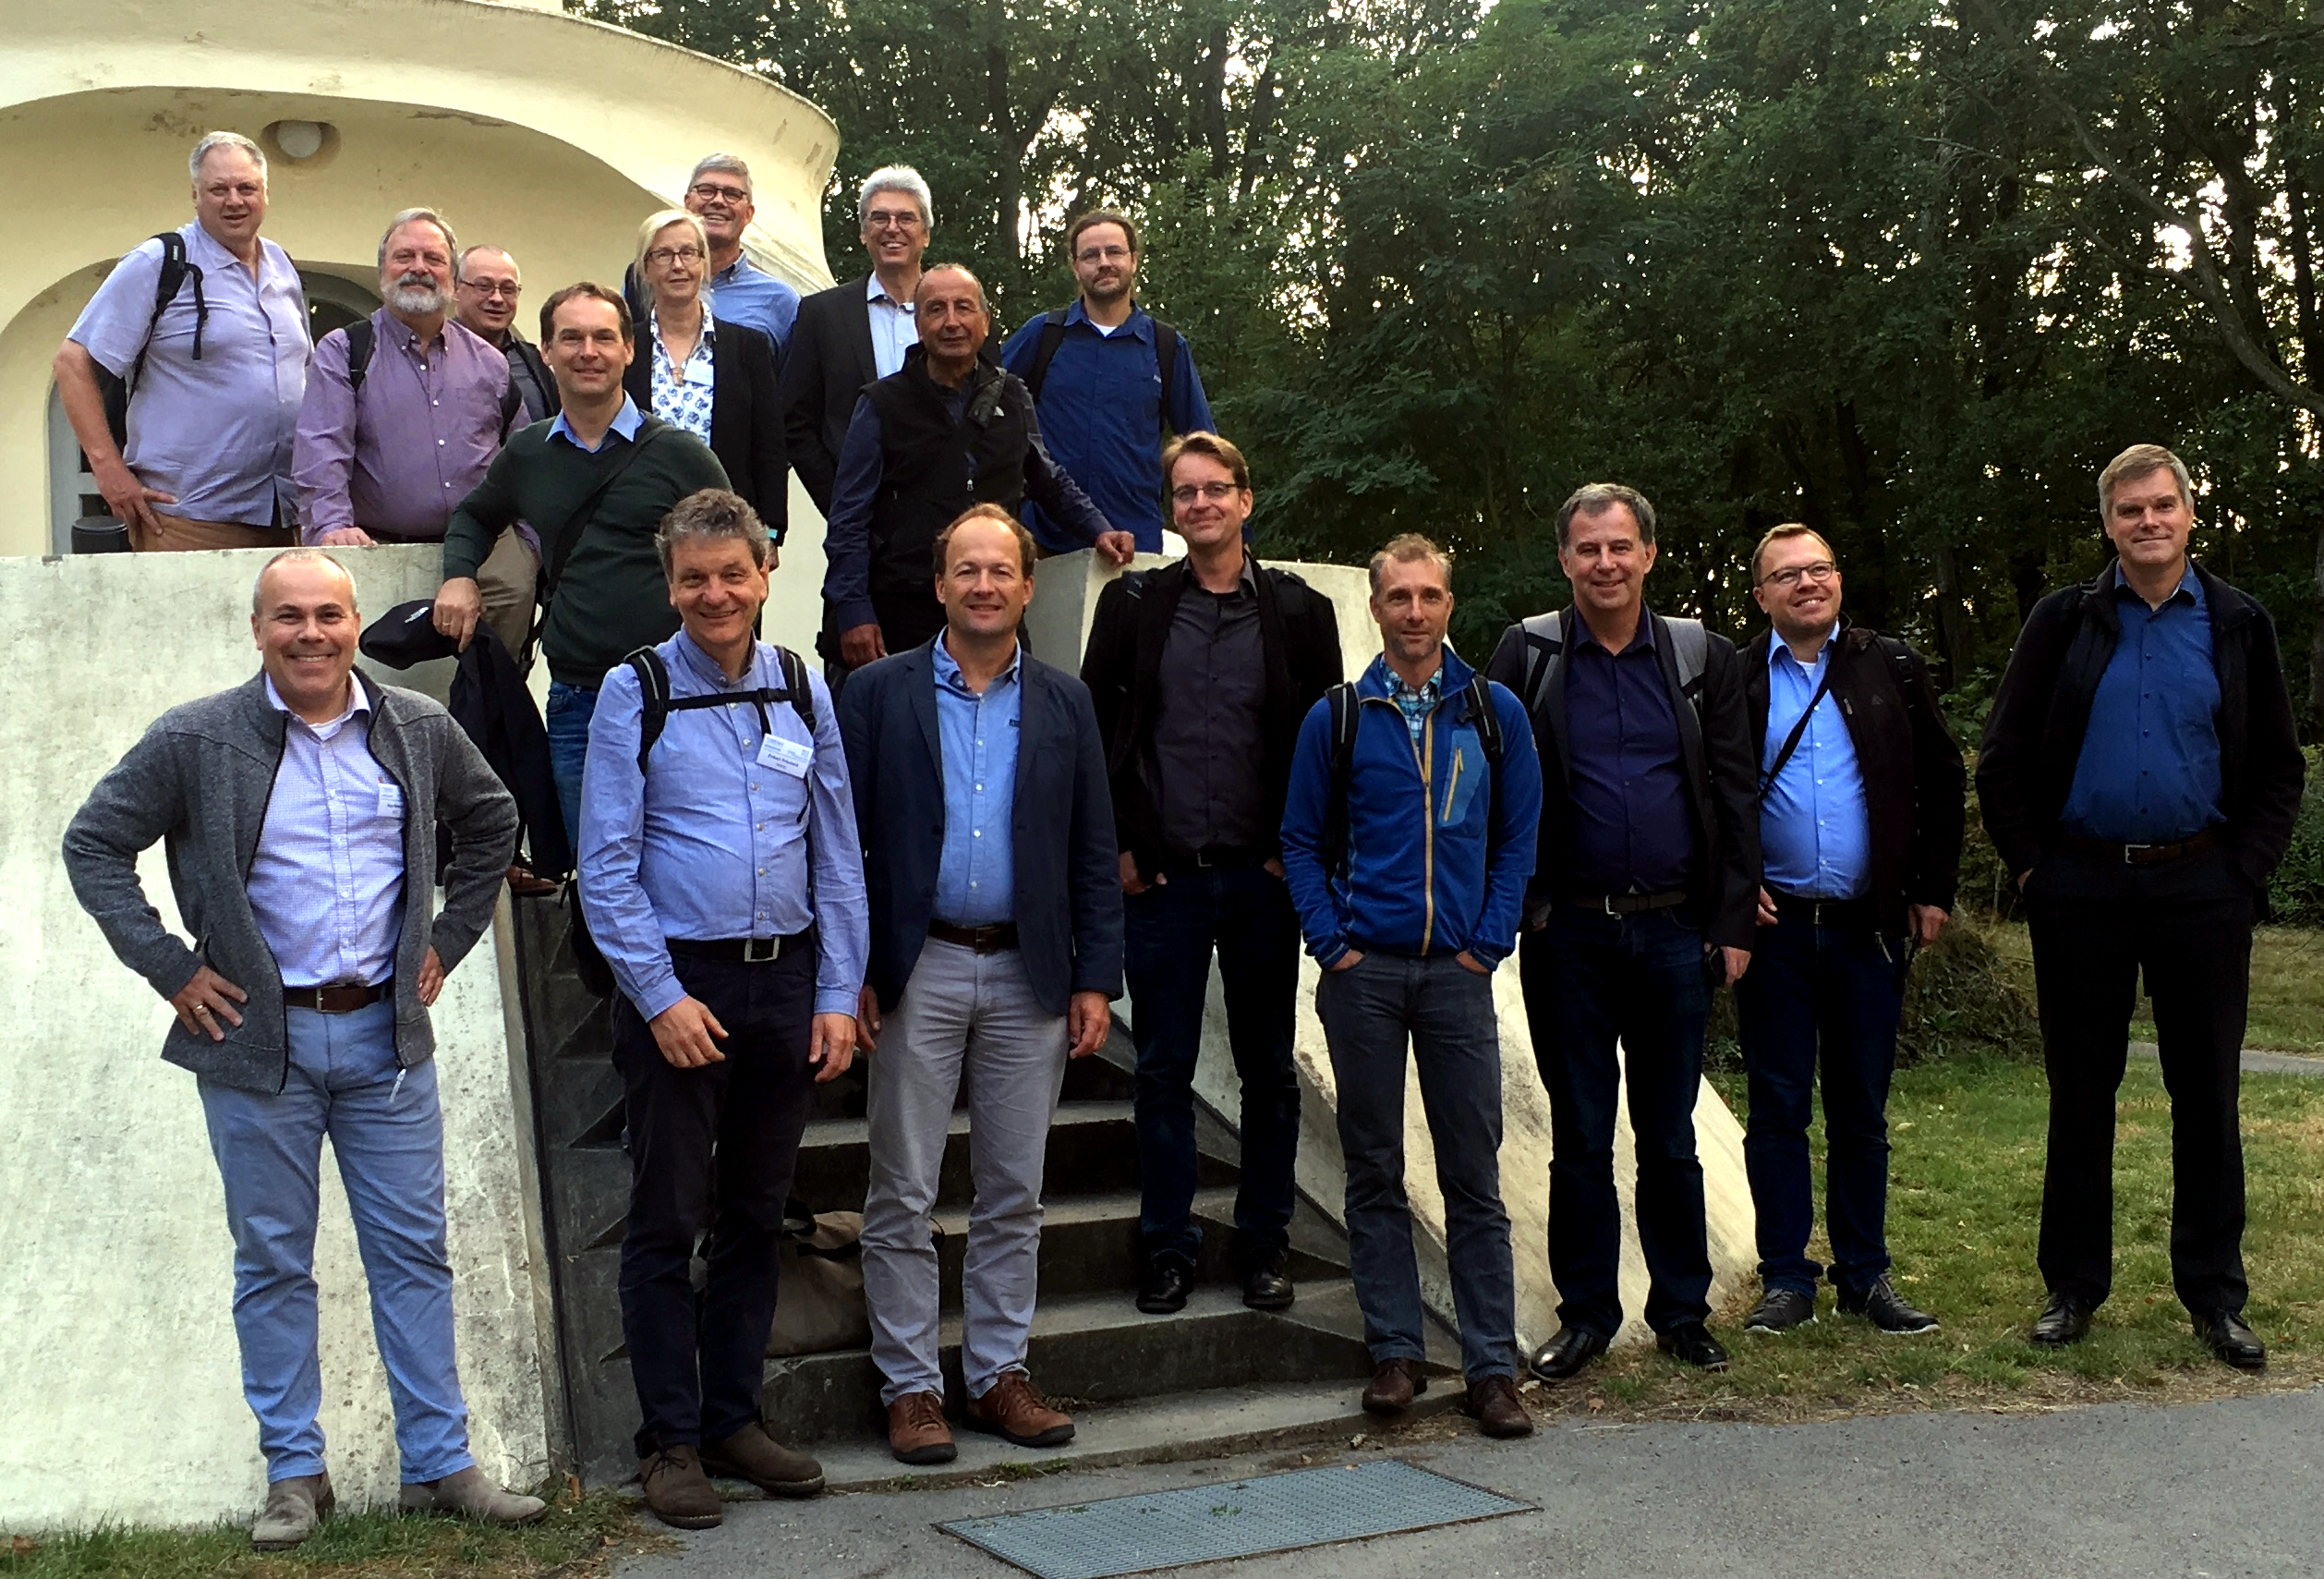 The Advisory Board and the Scientific Steering Committee  in front of the Einstein Tower (2019); in the back from left: Hank Loescher, Rick Hooper, Erik Borg, Alexander Knohl, Jaana Bäck, Thomas Pütz, Harry Vereecken, Dani Or, Martin Schrön; in front from left: Ingo Heinrich, Eckart Priesack, Harald Kunstmann, Heye Bogena, Ralf Kiese, Peter Dietrich, Matthias Mauder, Remko Uijenhoet